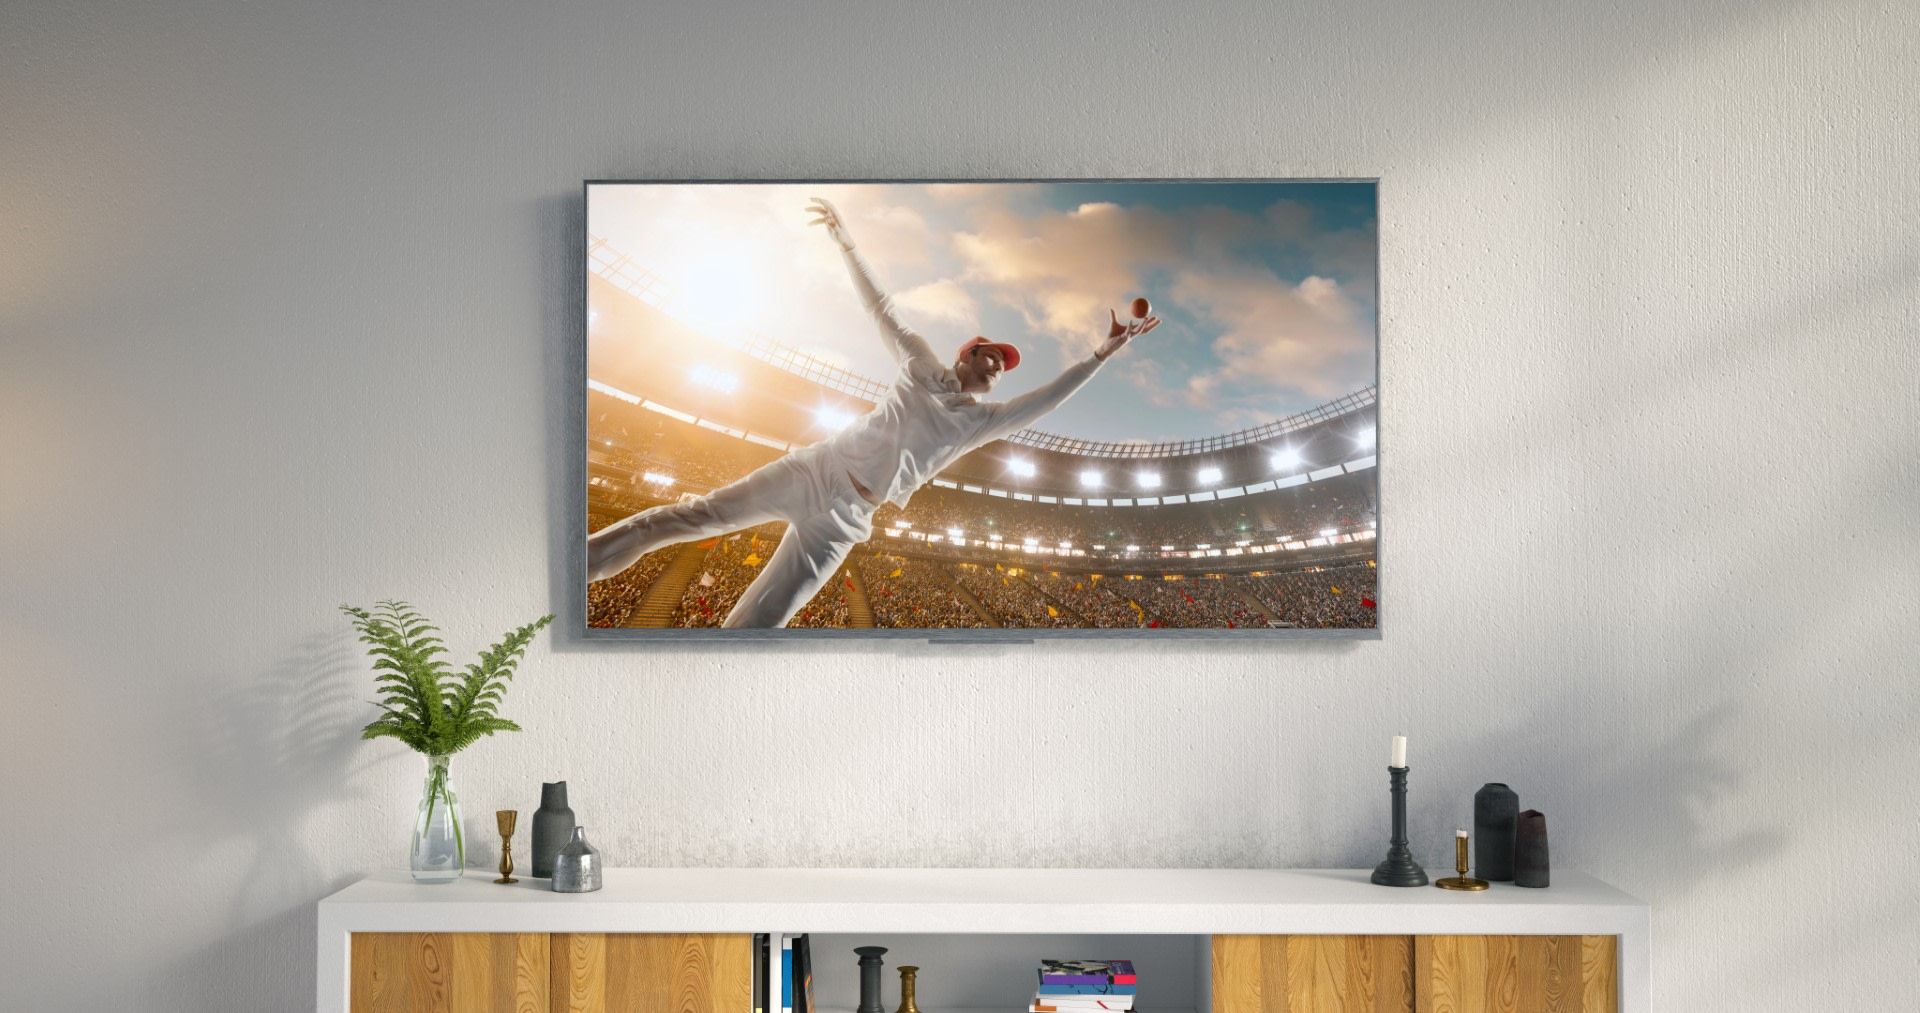 An image related to Top SuperSonic HD TVs